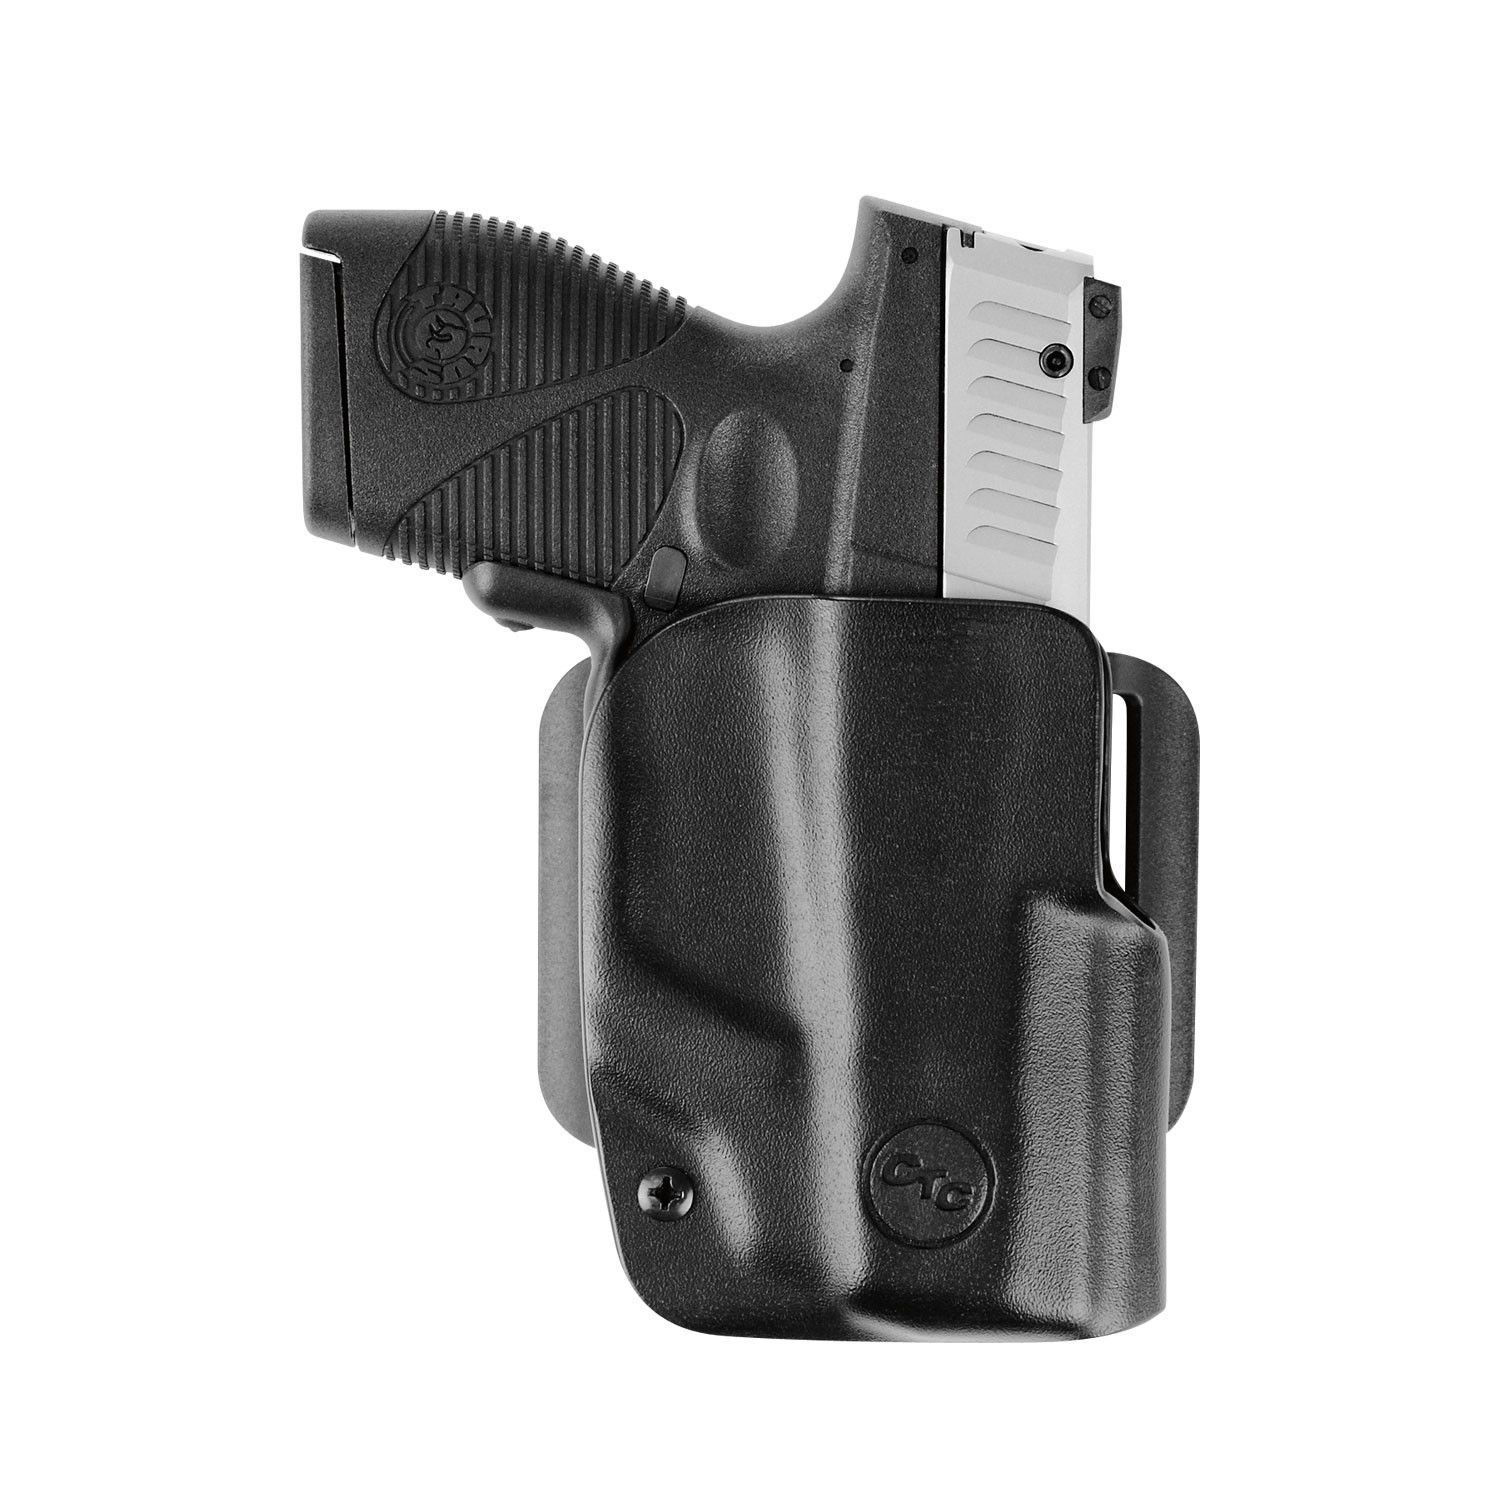 Bladetech holster for taurus slim pt 708 709 740 with